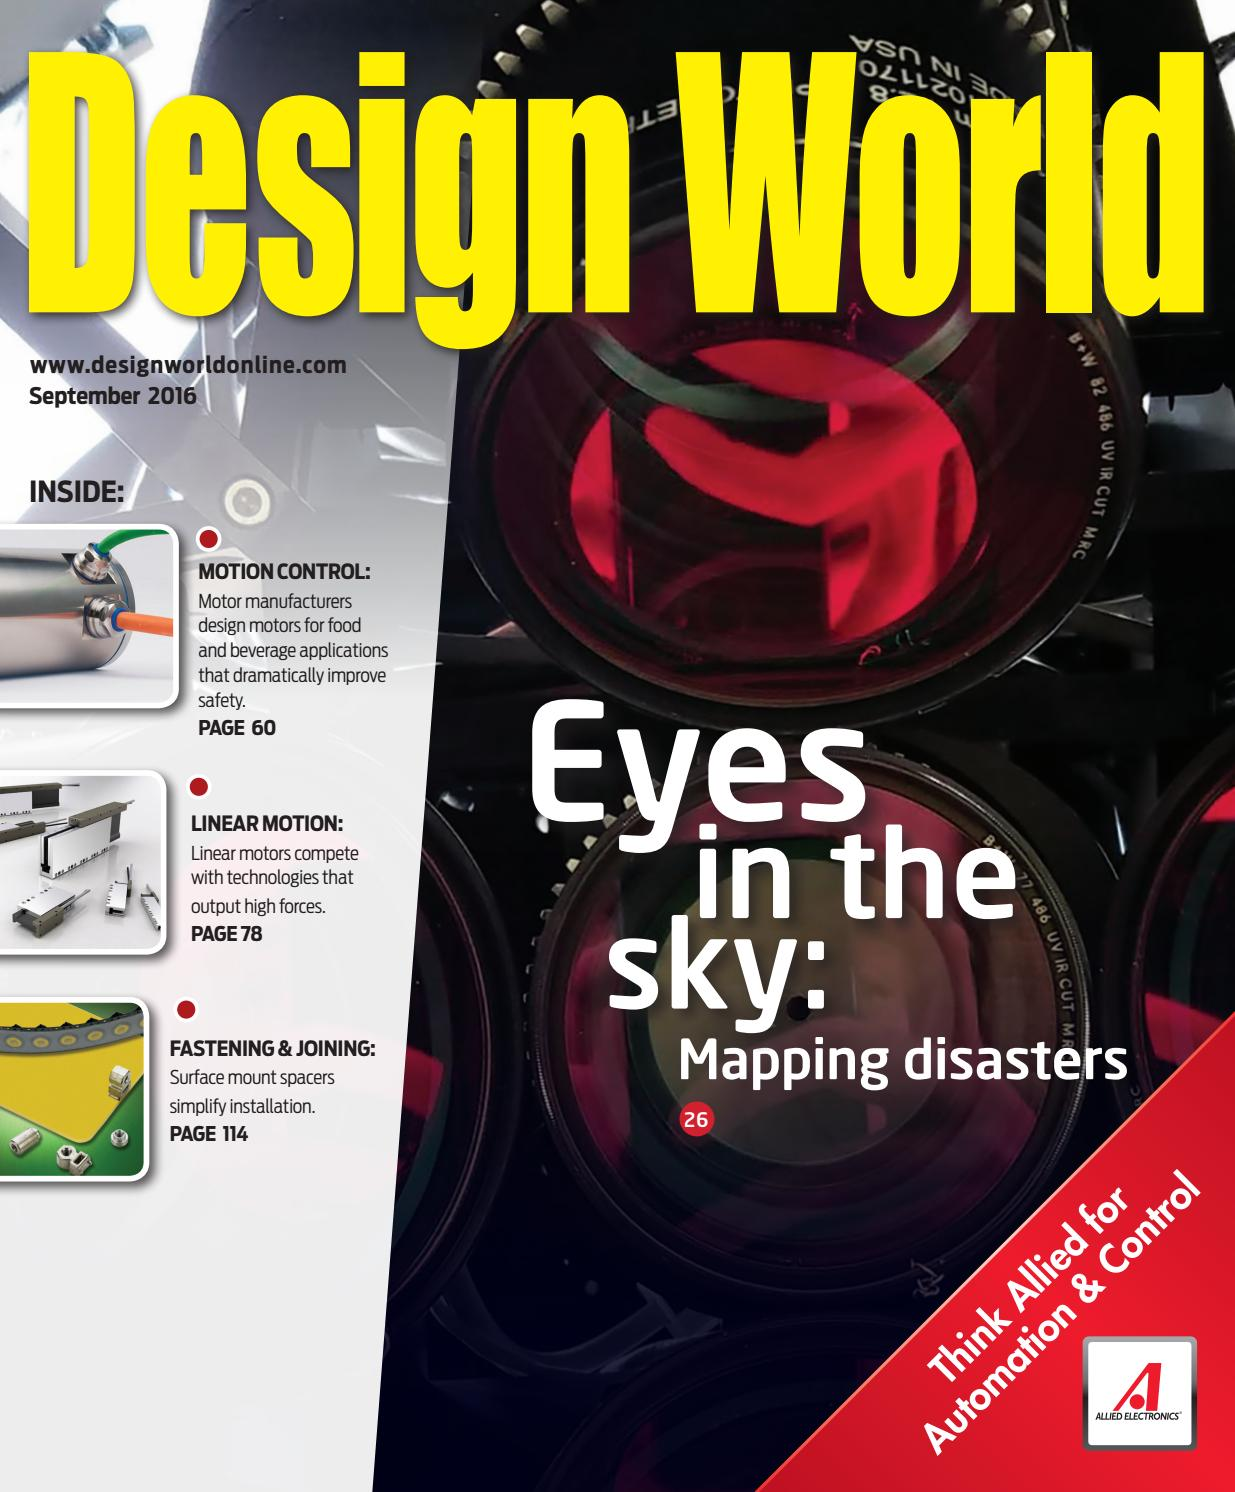 Design World September 2016 By Wtwh Media Llc Issuu Motorguide Mg 28 Wiring Diagram